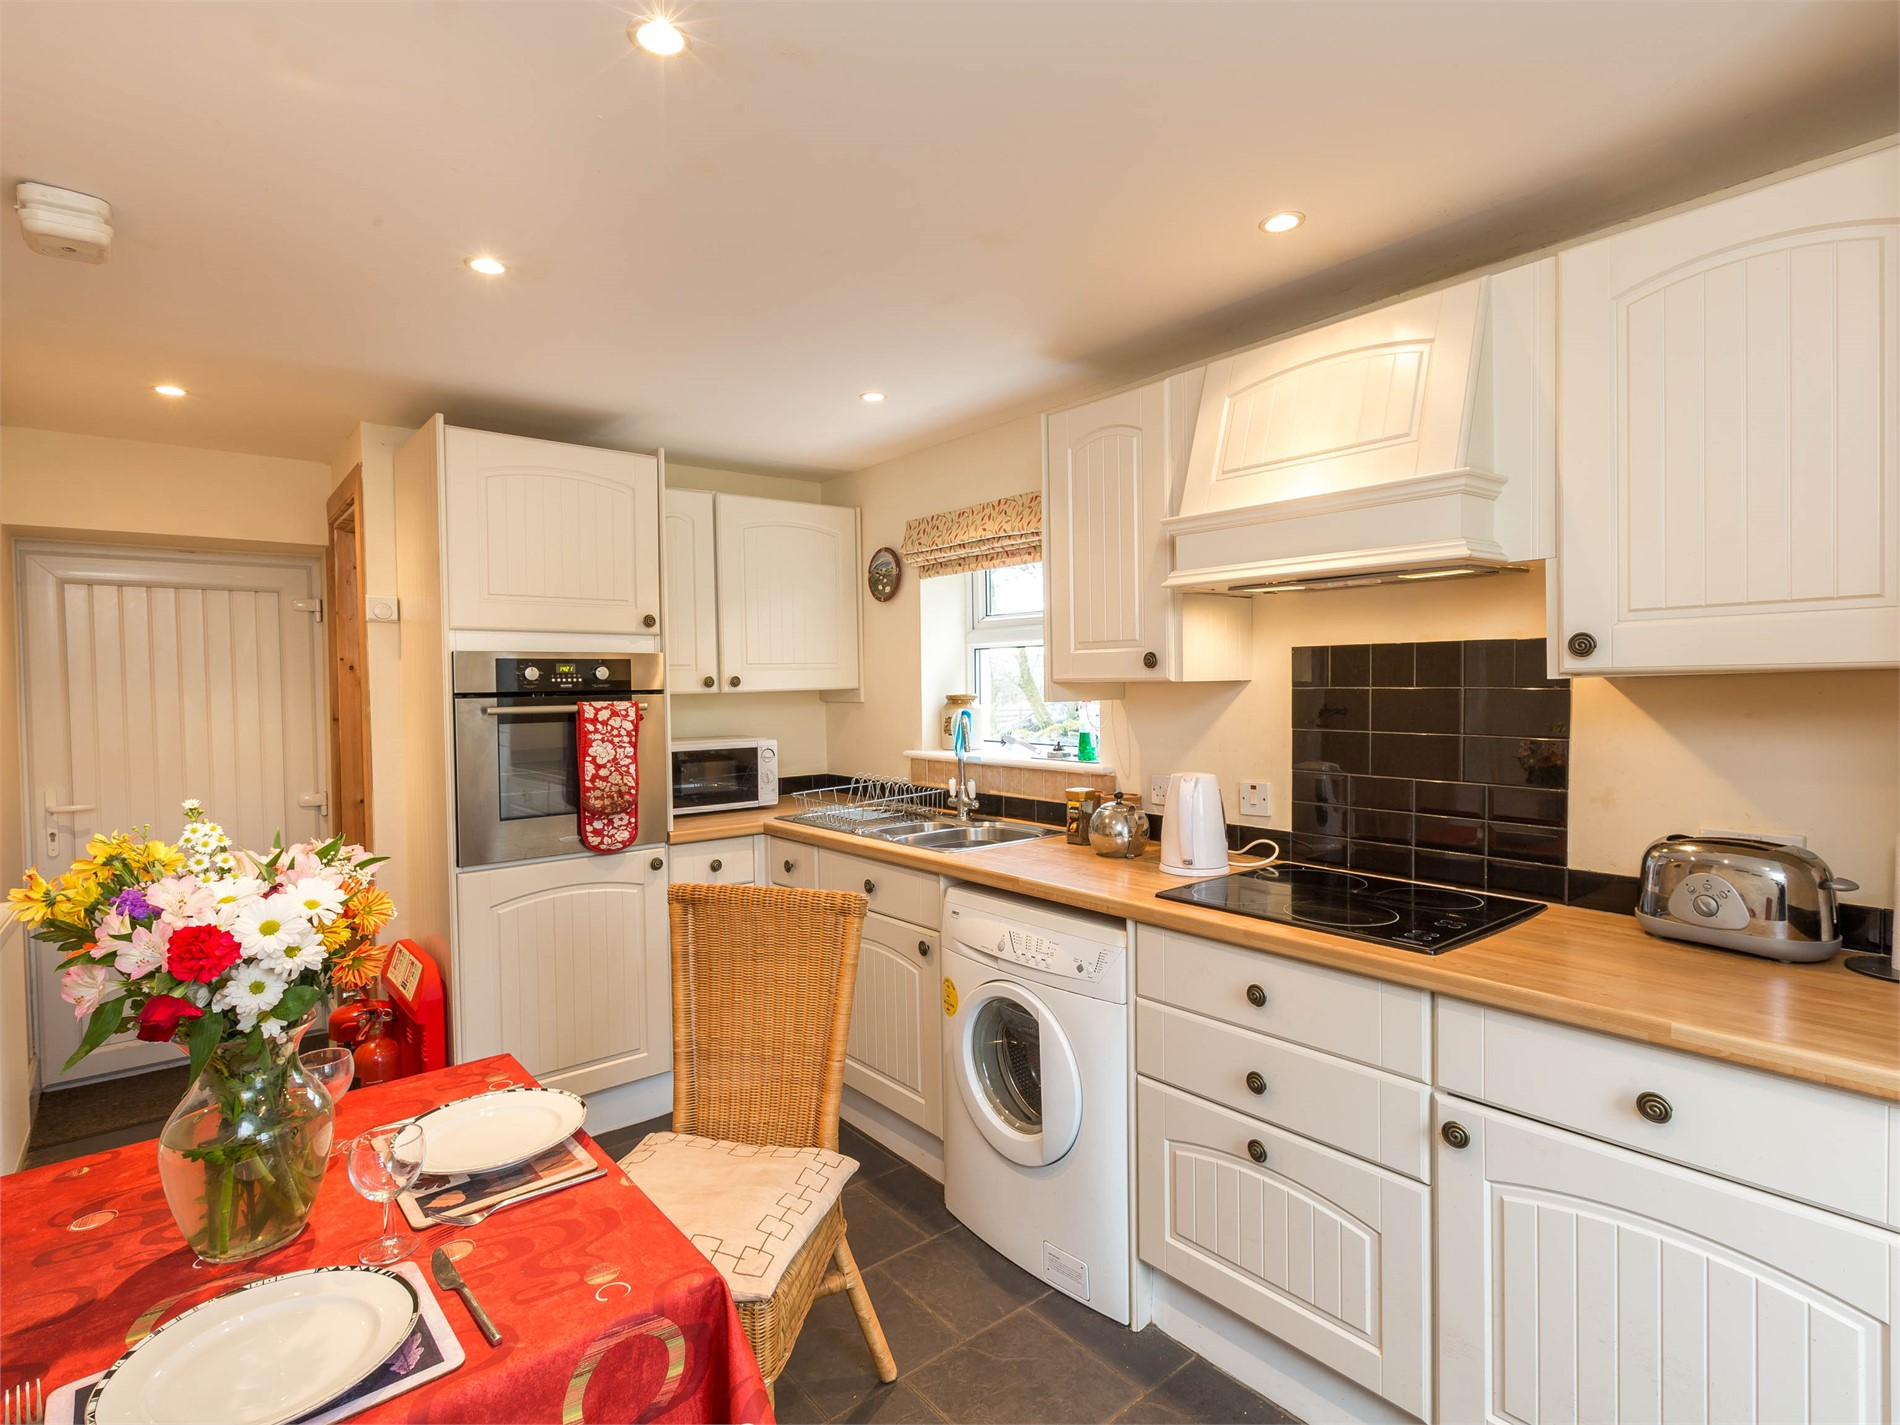 1 Bedroom Cottage in Balmaclellan, Ayrshire and Dumfries & Galloway